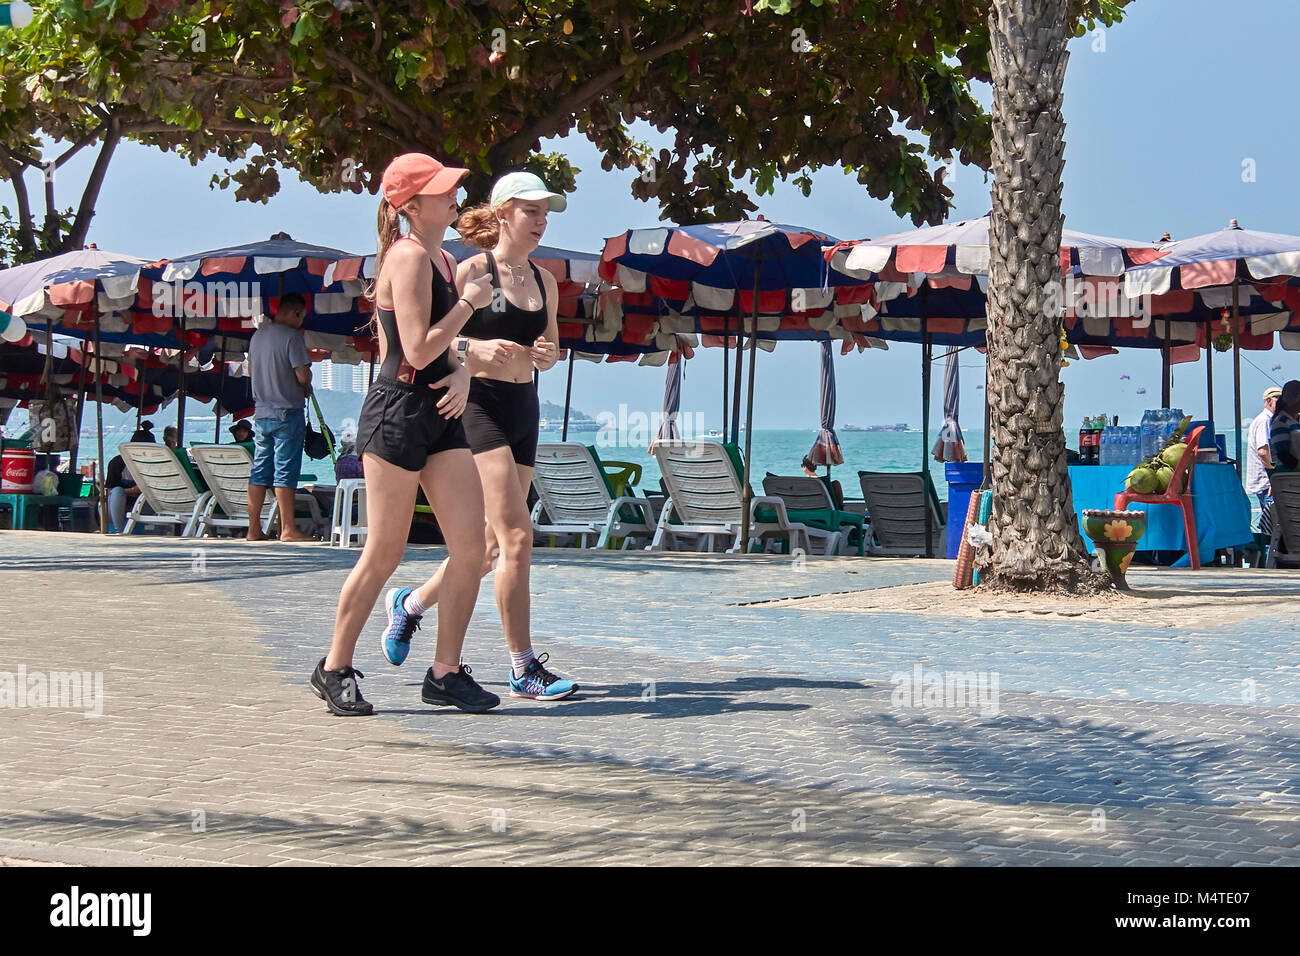 Girls running in the street as a keep fit activity - Stock Image